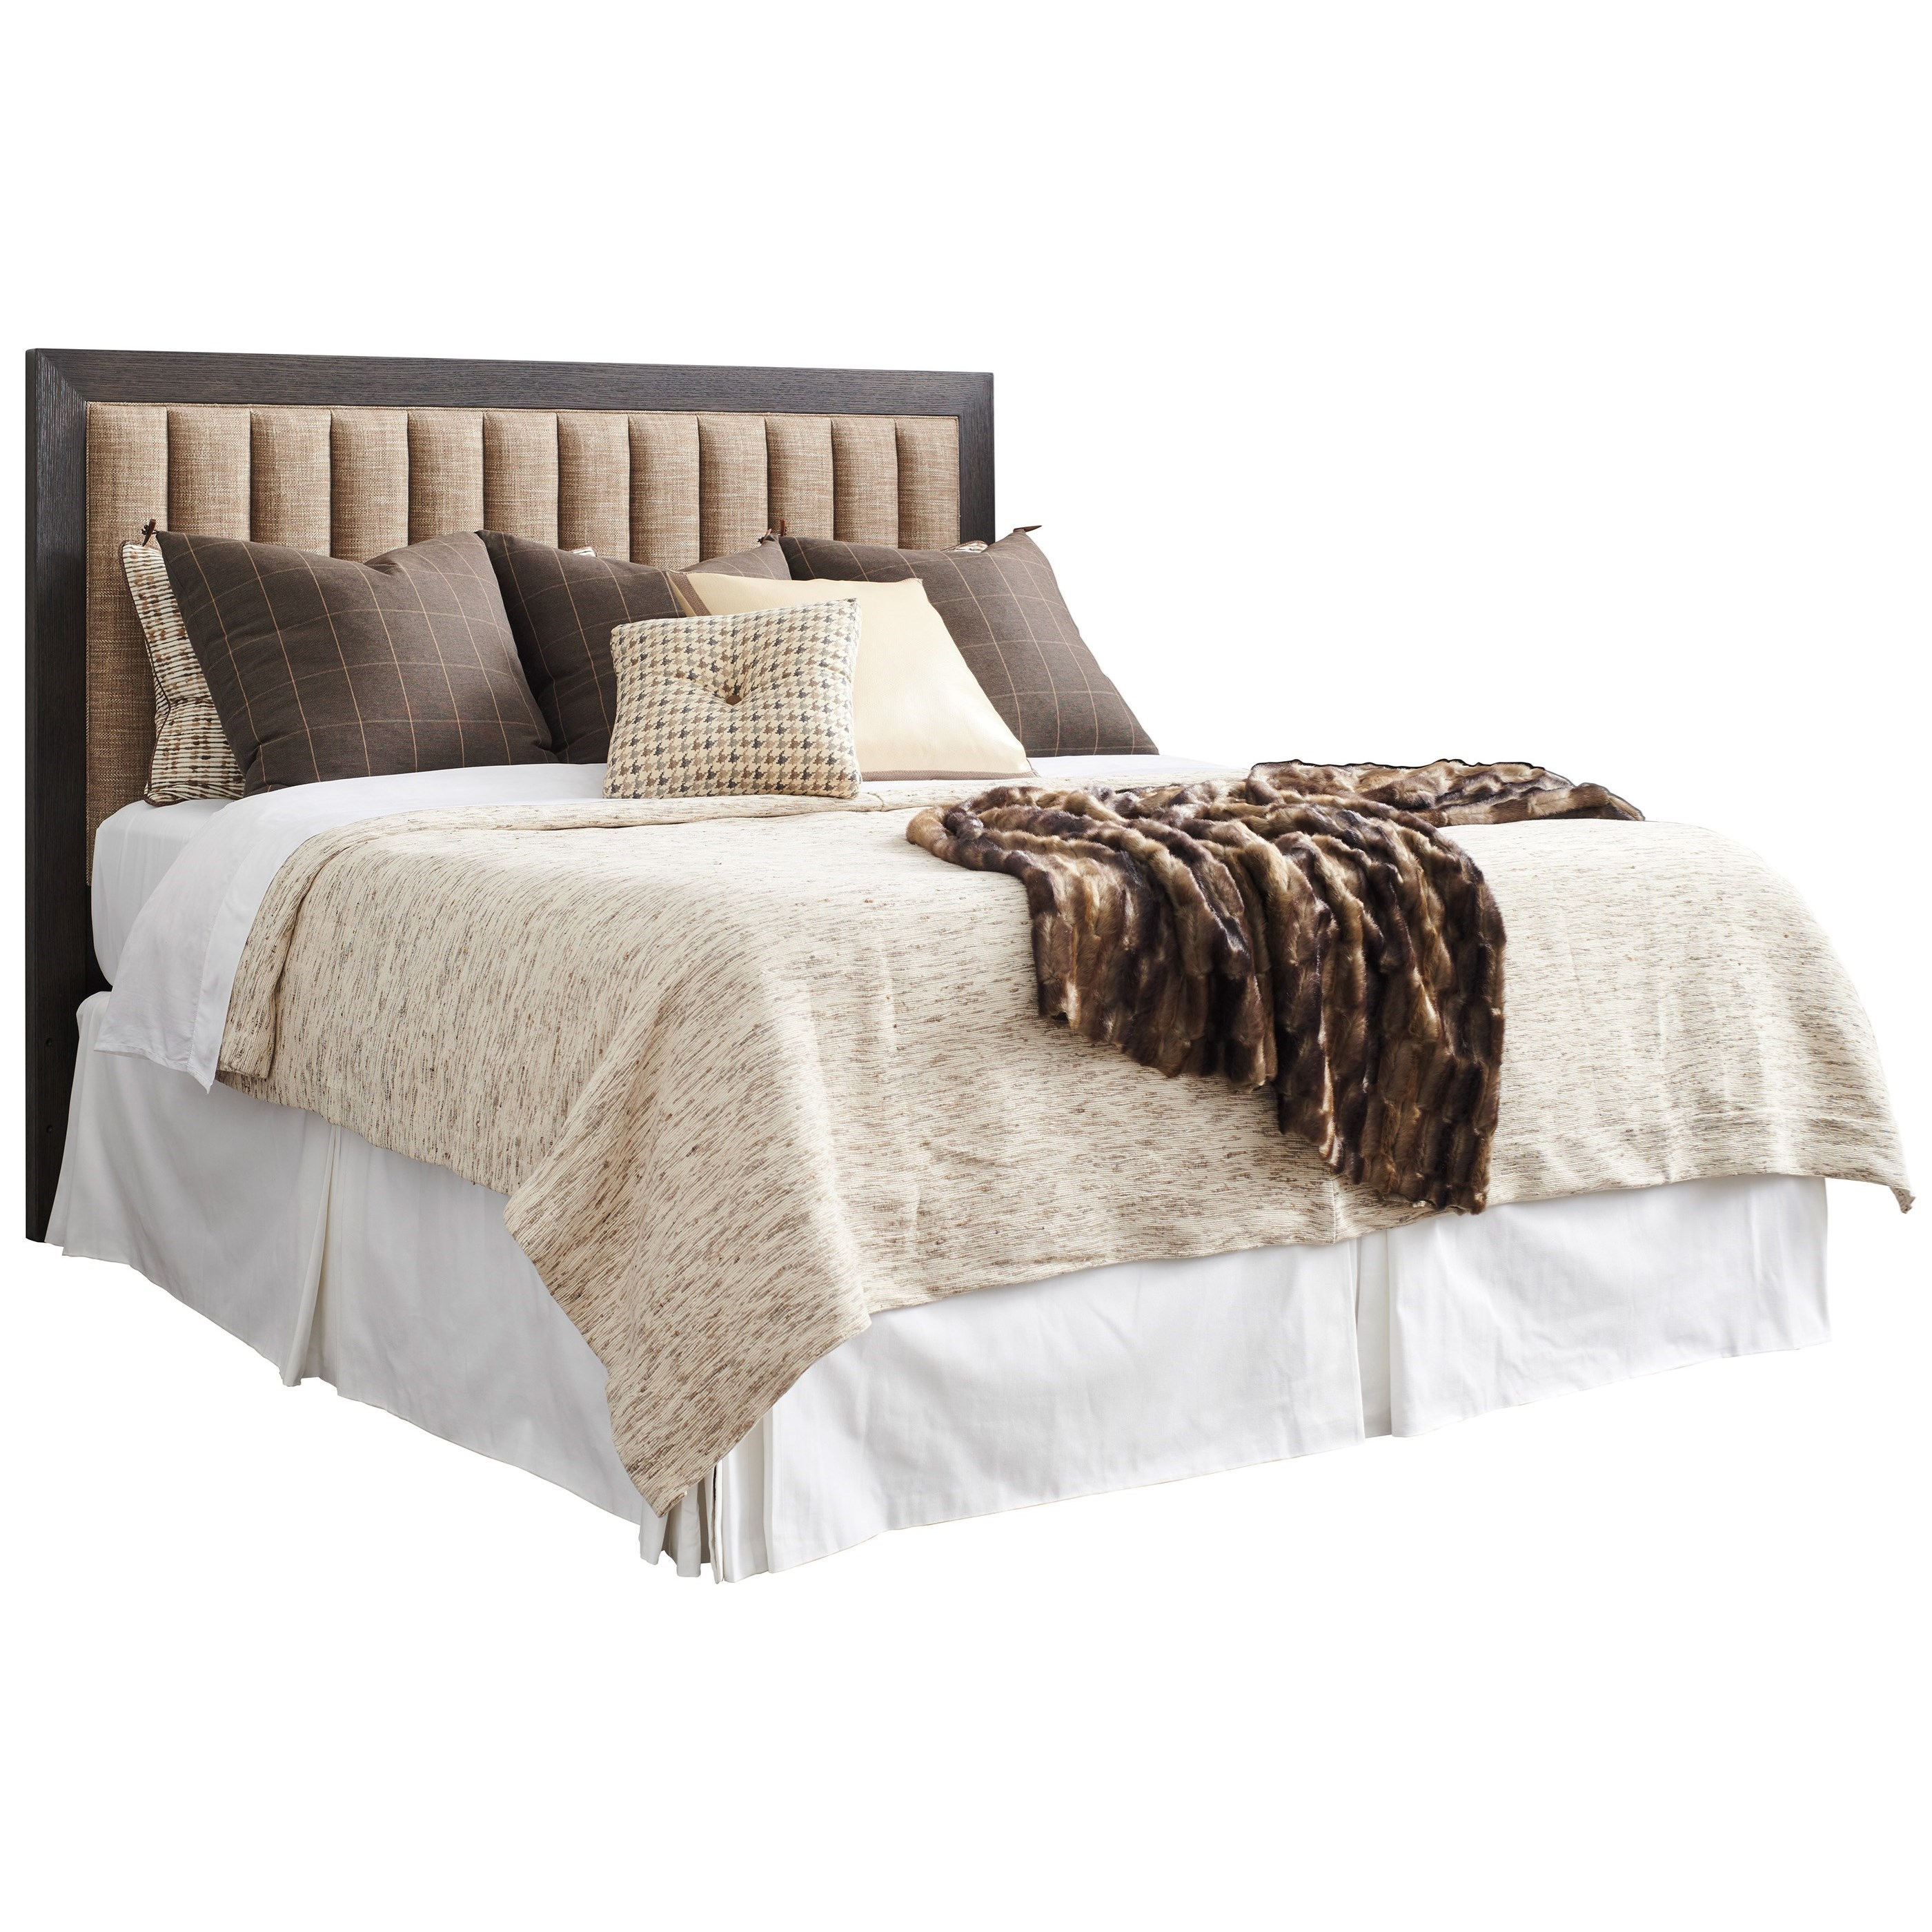 Park City Talisker Queen Upholstered Headboard by Barclay Butera at Baer's Furniture